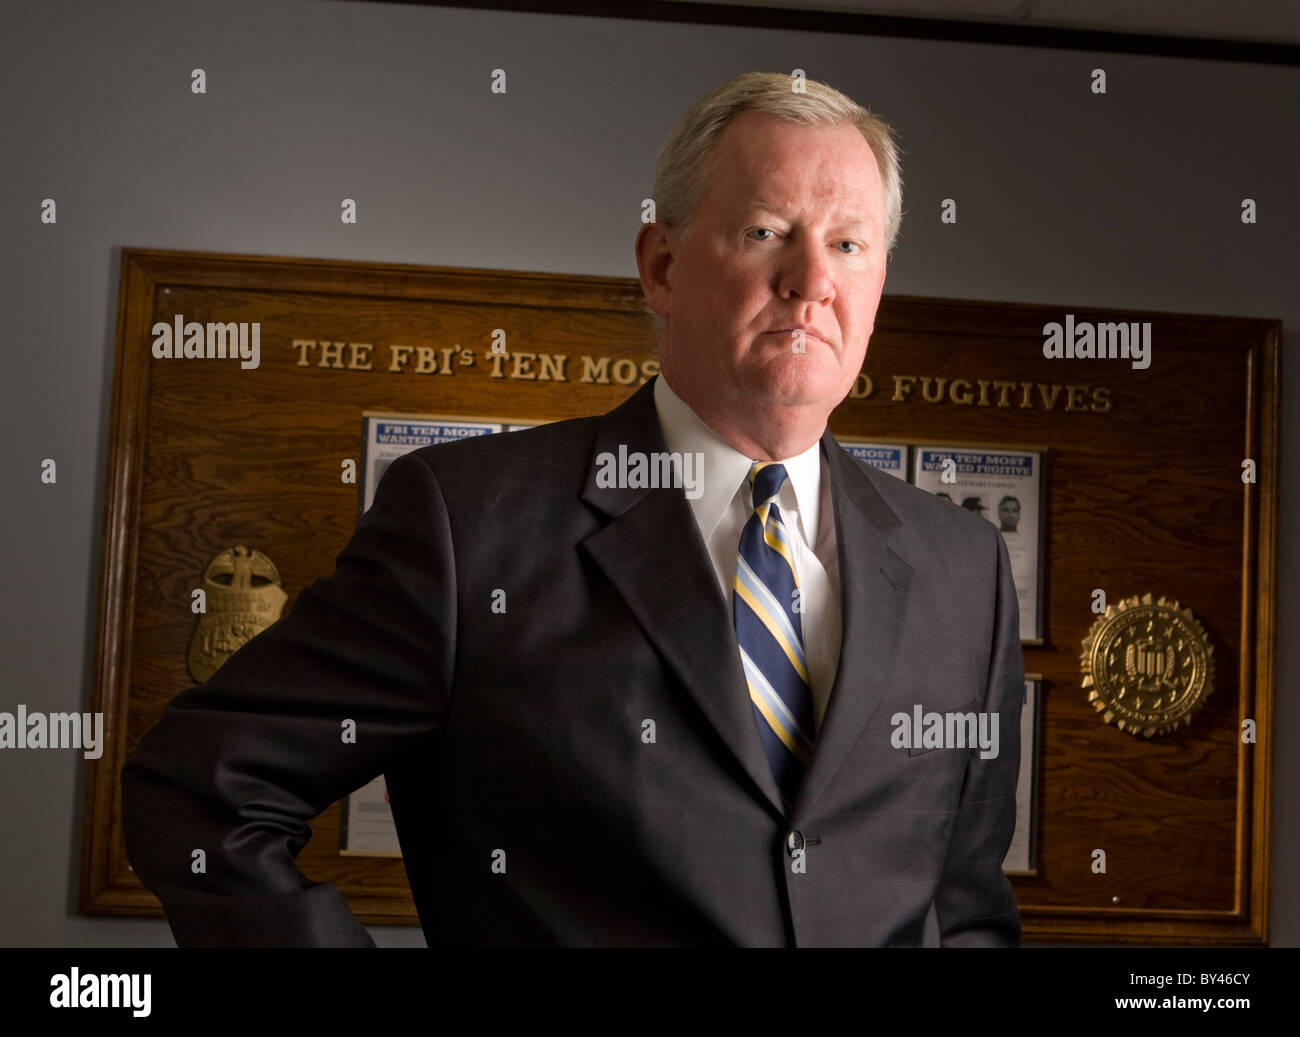 u s federal bureau of investigation special agent matthew stock photo u s federal bureau of investigation special agent matthew gravelle who investigated mortgage scams in austin texas